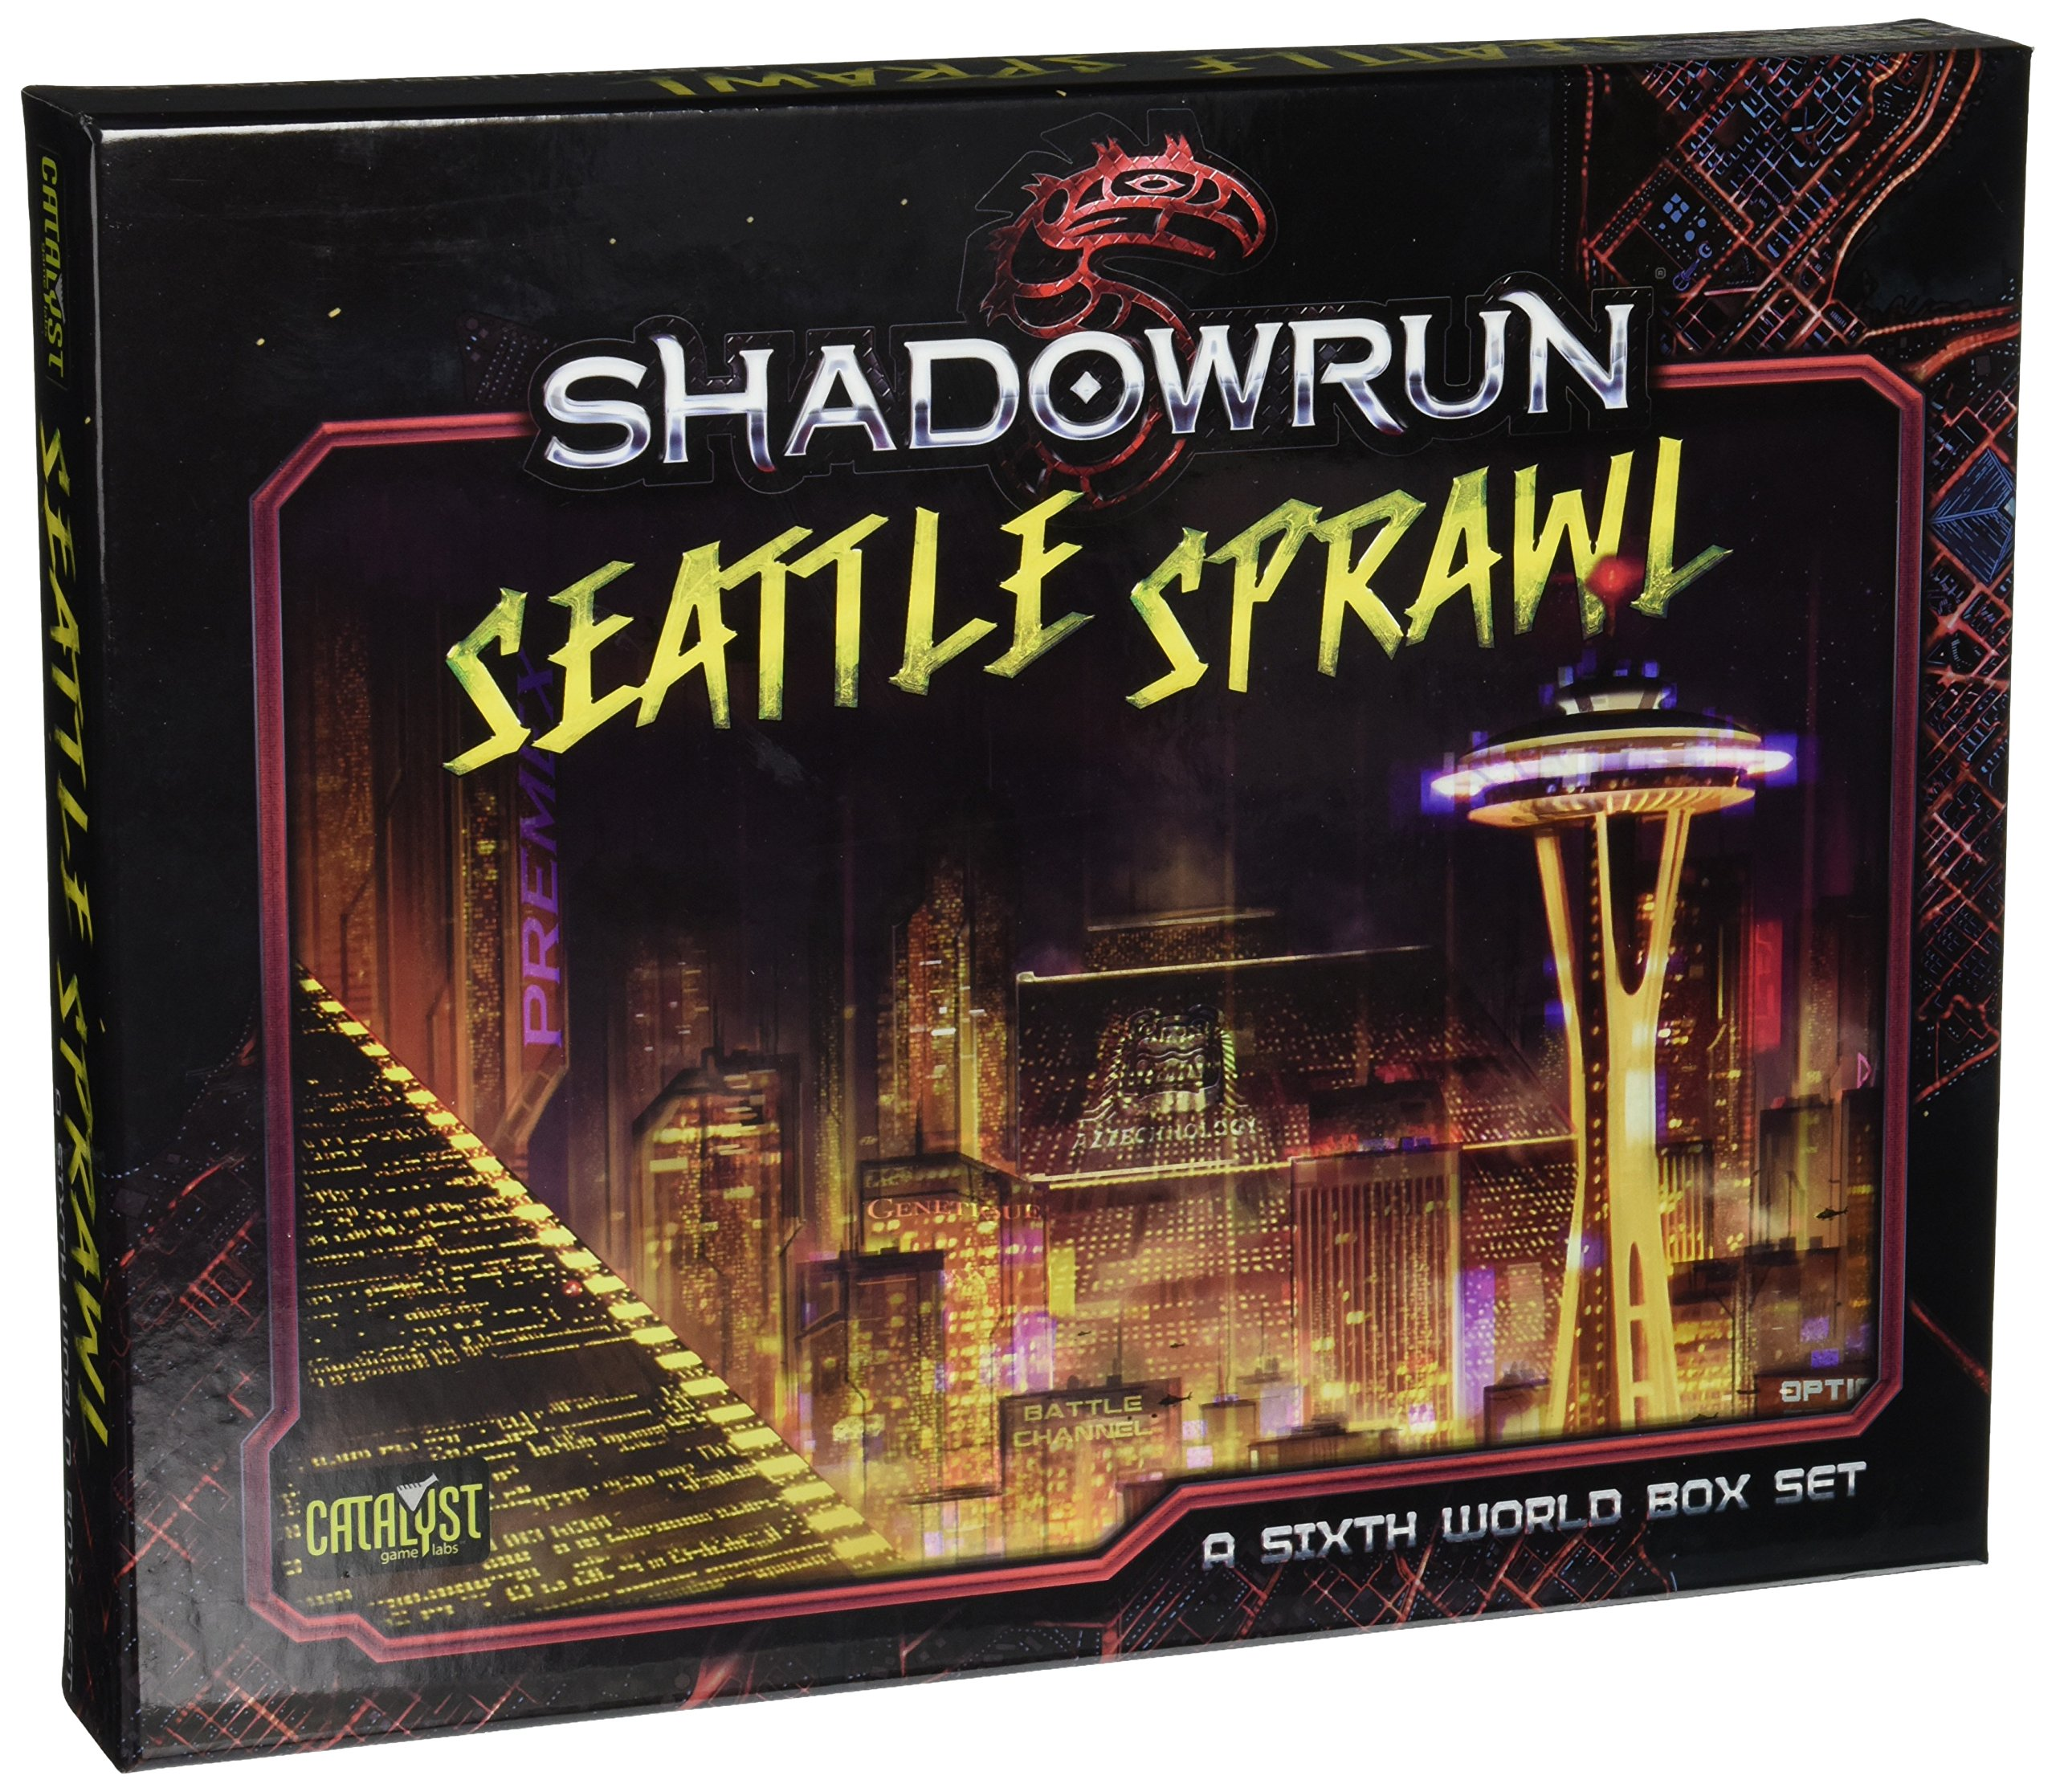 Shadowrun Seattle Box: Amazon.de: Unbekannt: Bücher